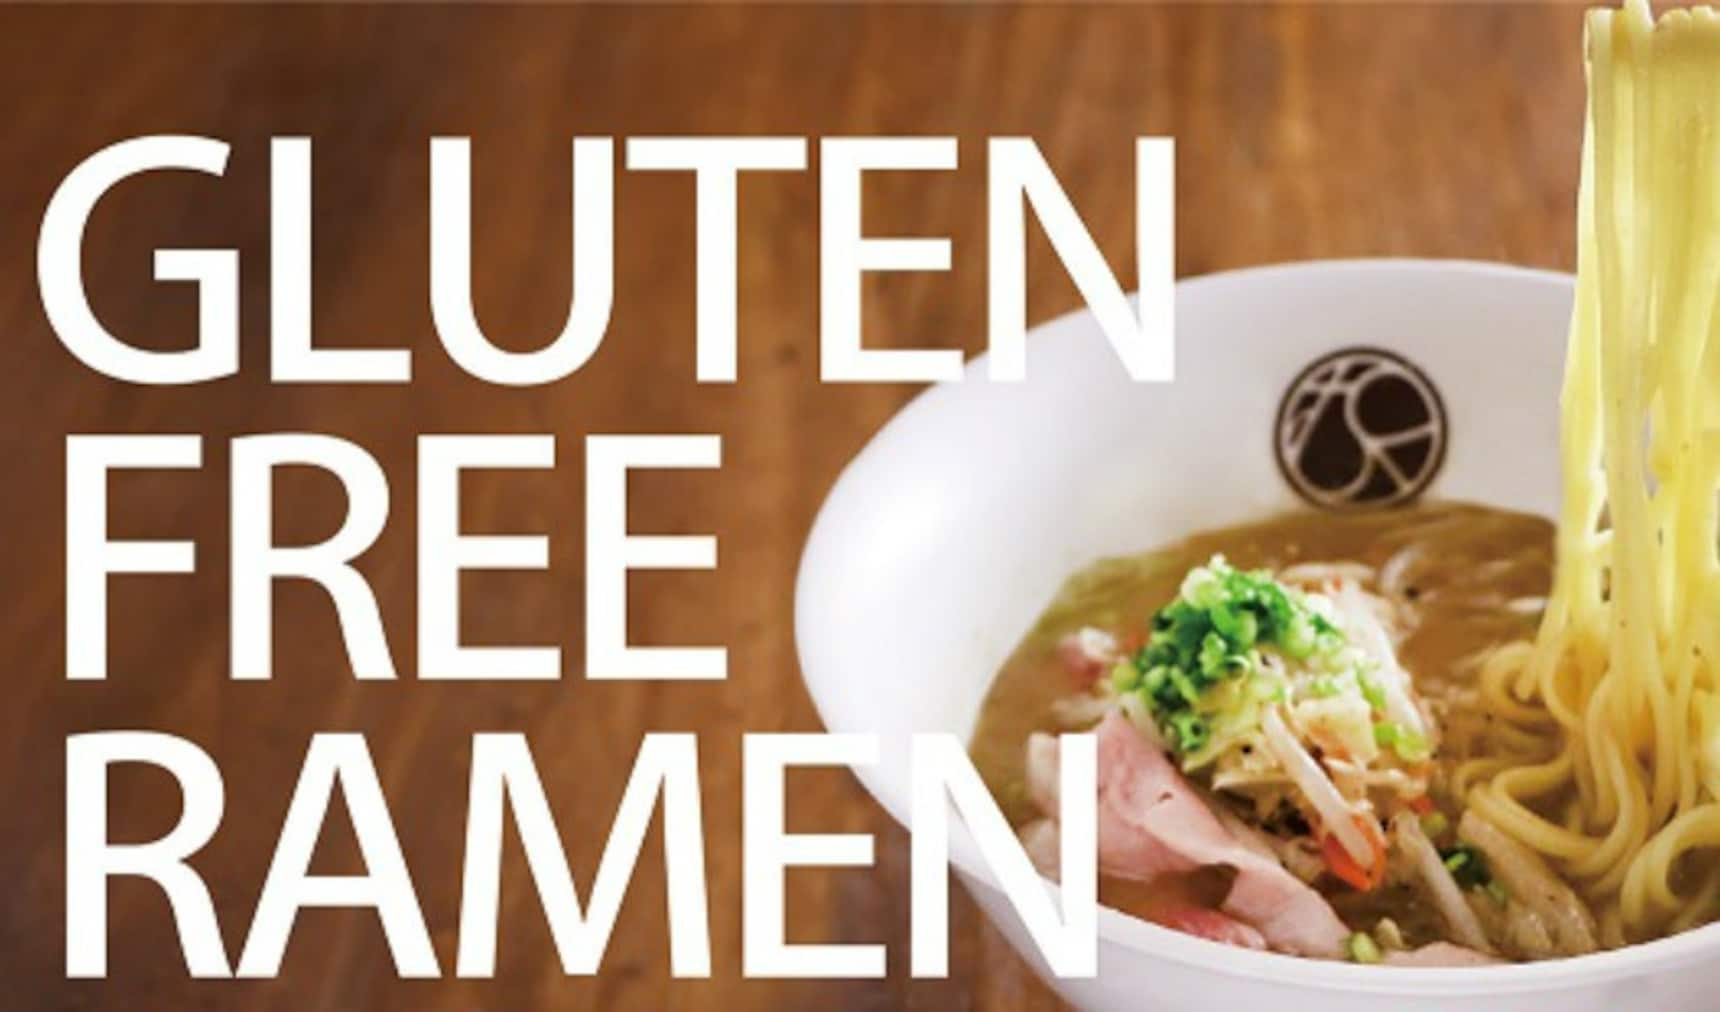 Chow Down on Some Gluten-Free Ramen